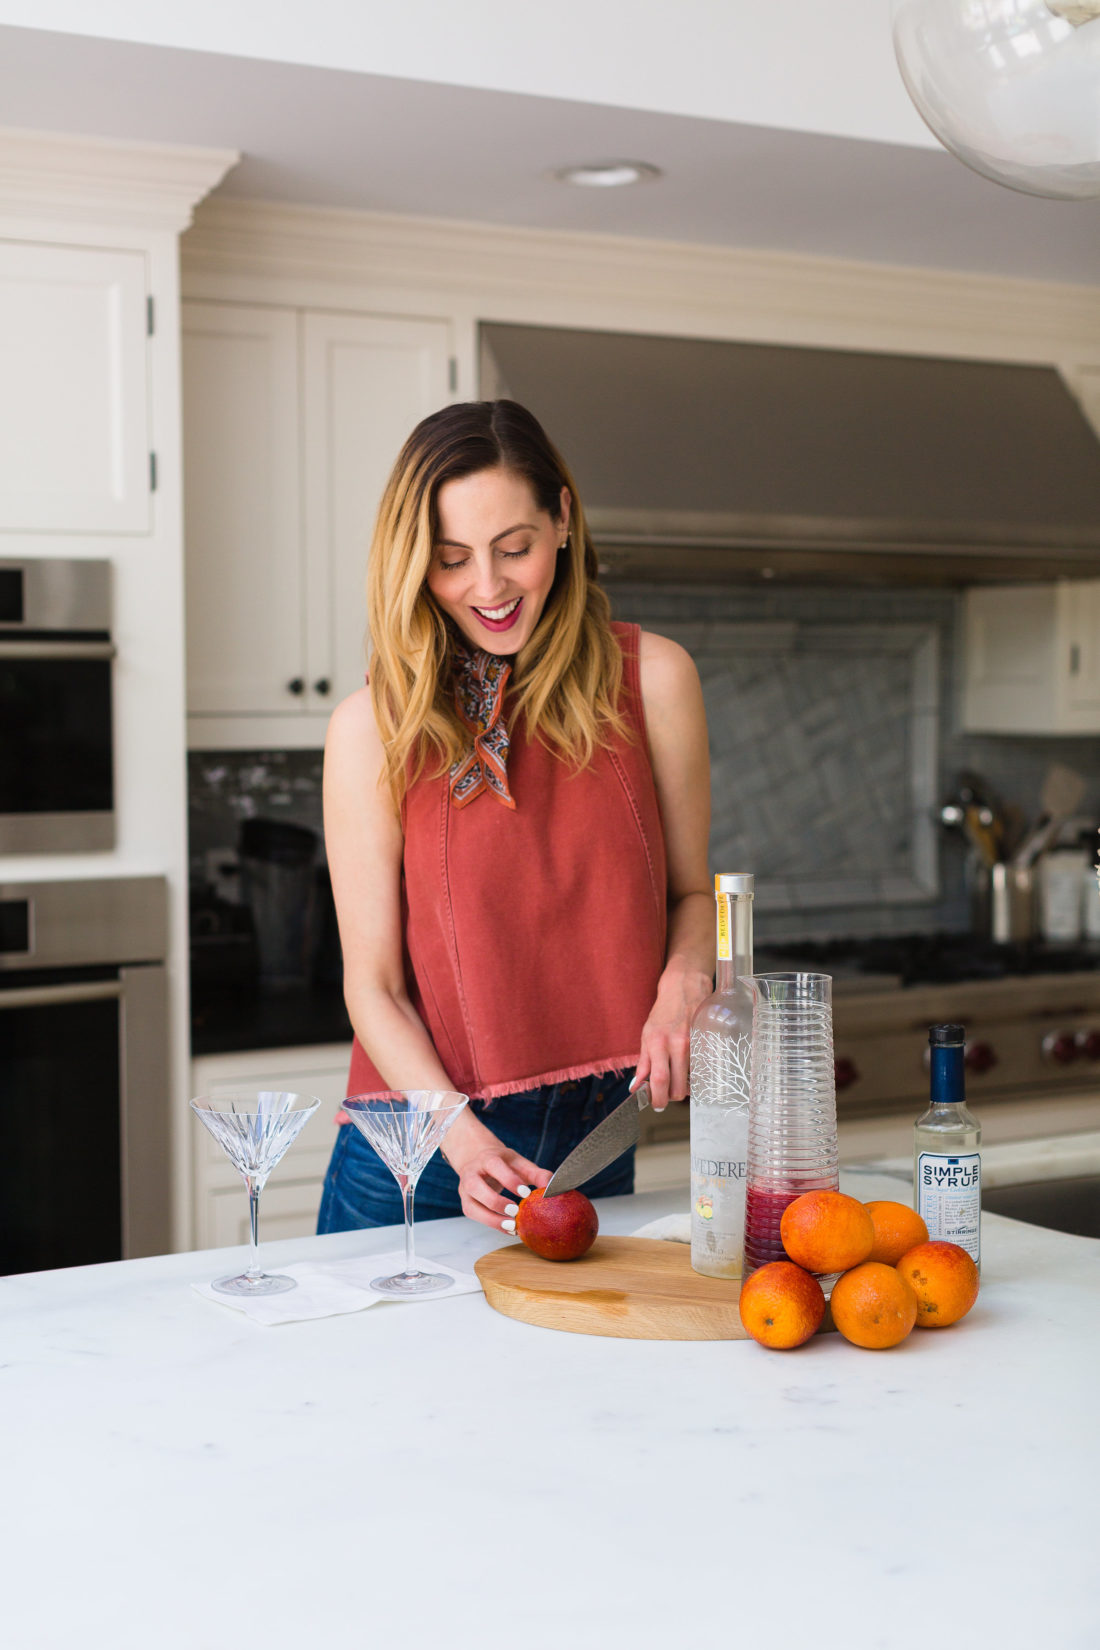 Eva Amurri Martino stands in the kitchen of her Connecticut home and slices blood oranges for martinis